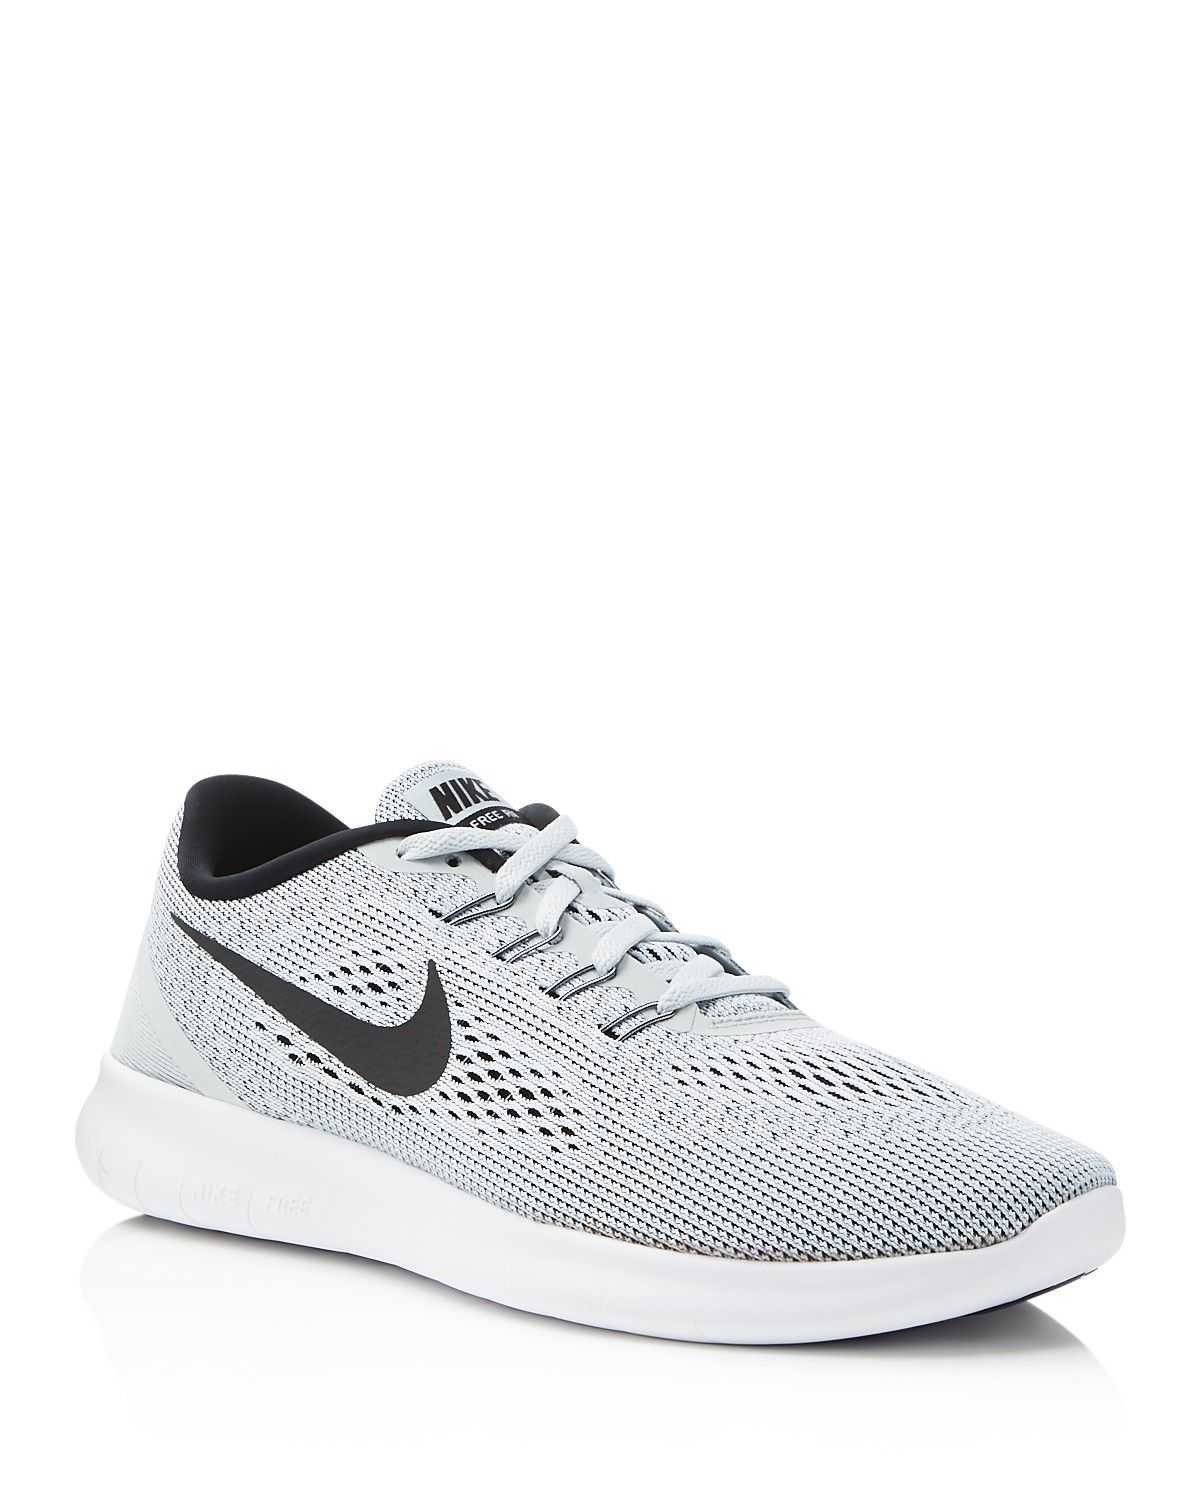 promo code 19425 25ec4 Nike Free RN Lace Up Sneakers - These run-ready sneakers from Nike feature  an engineered mesh upper that conforms to your foot s movement.